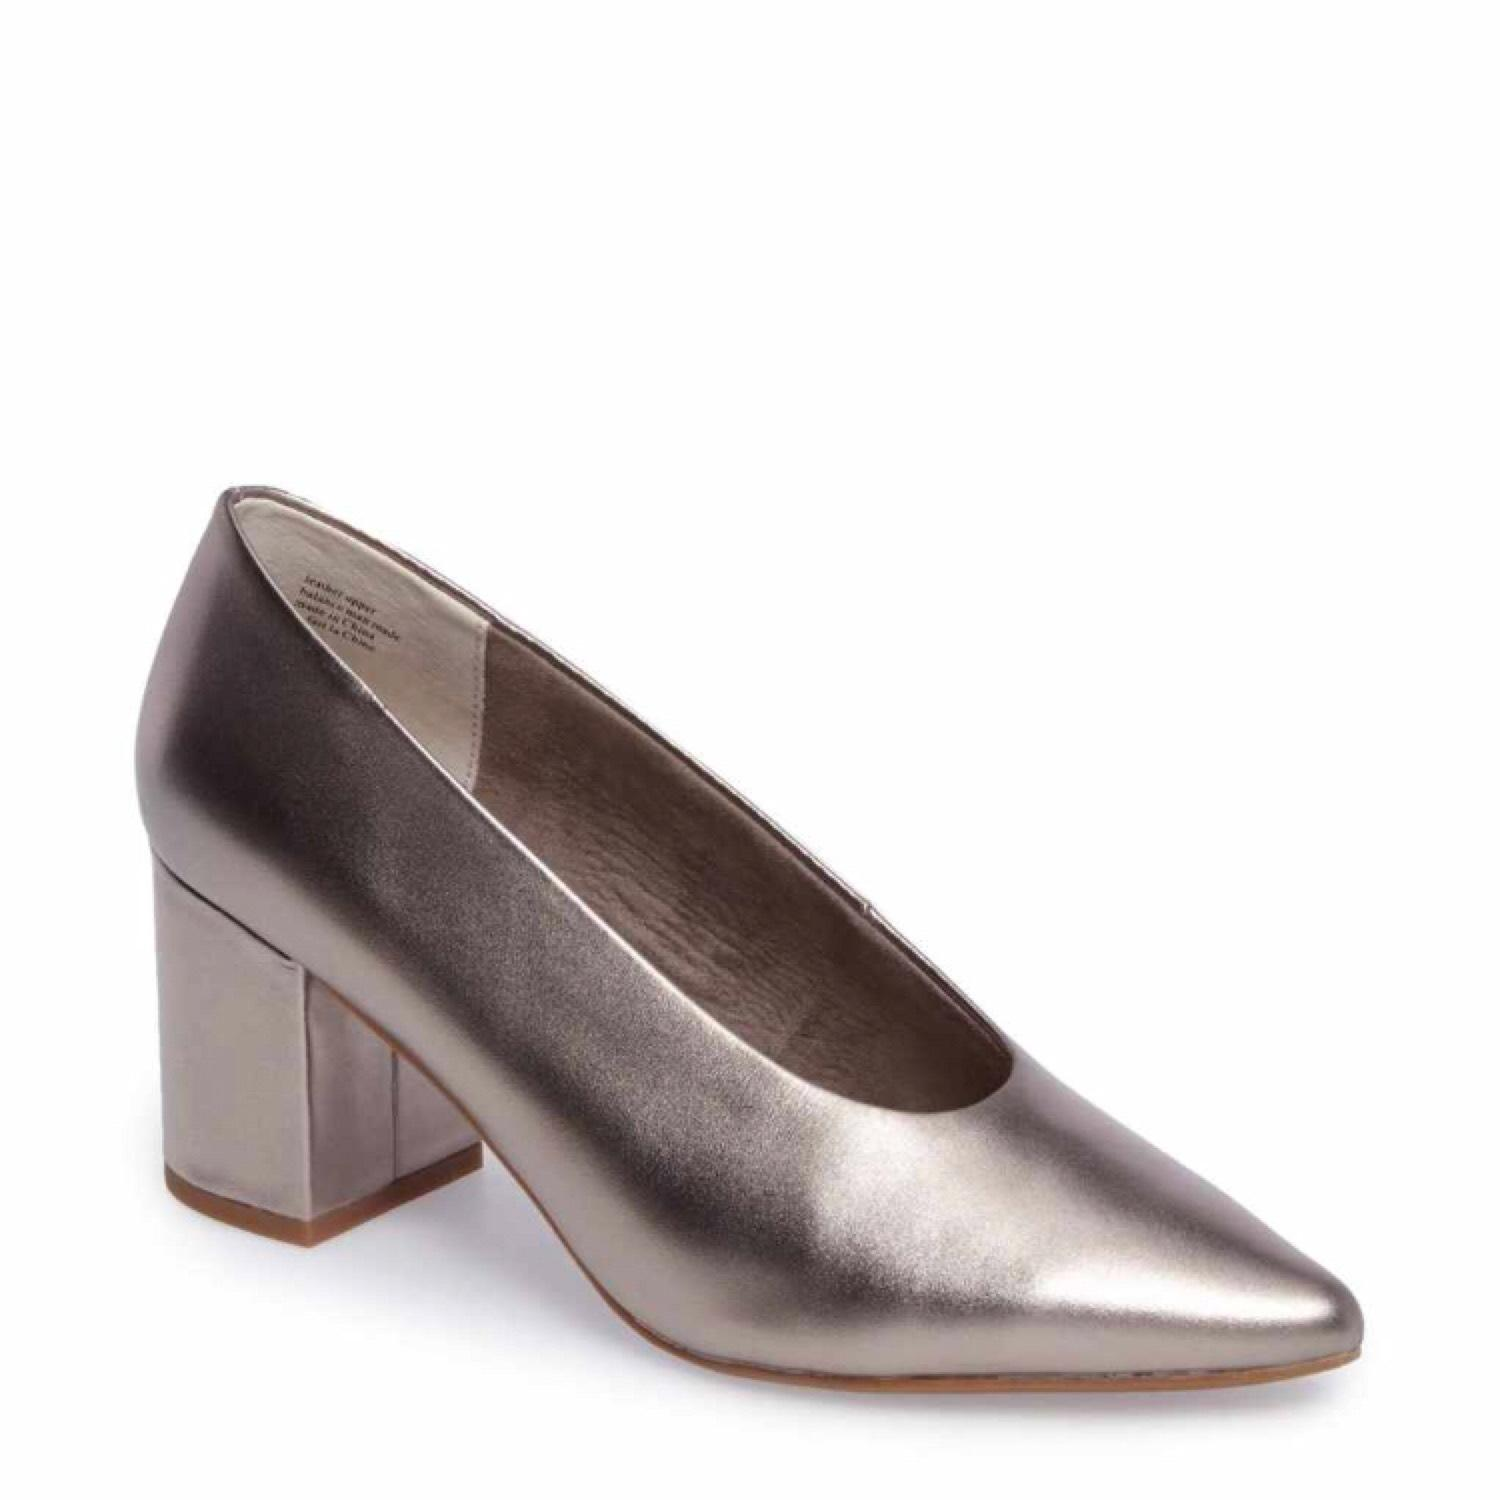 Seychelles Pewter Leather Block Pumps (M, Size US 8.5 Regular (M, Pumps B) 9d19e9